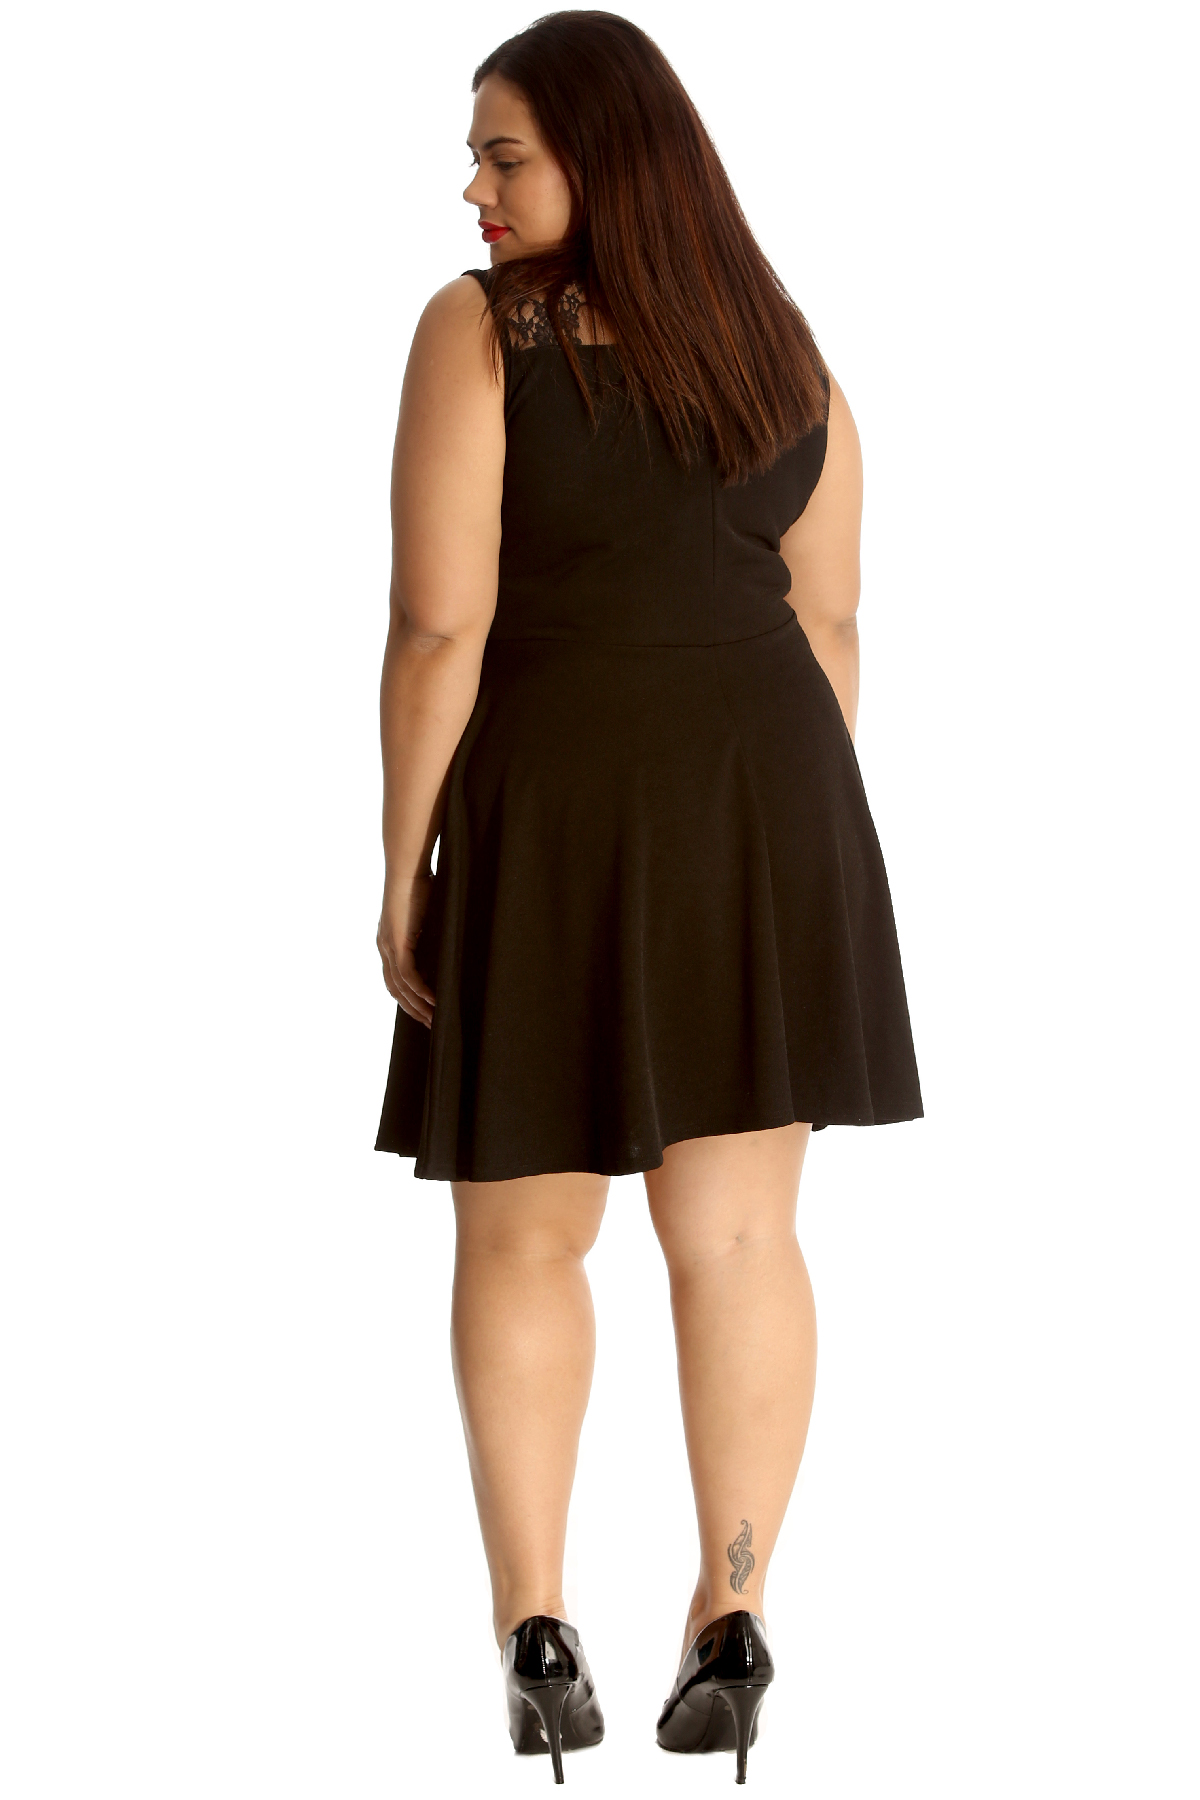 New Ladies Plus Size Dress Skater Womens Lace Neck Sleeveless Flared Nouvelle